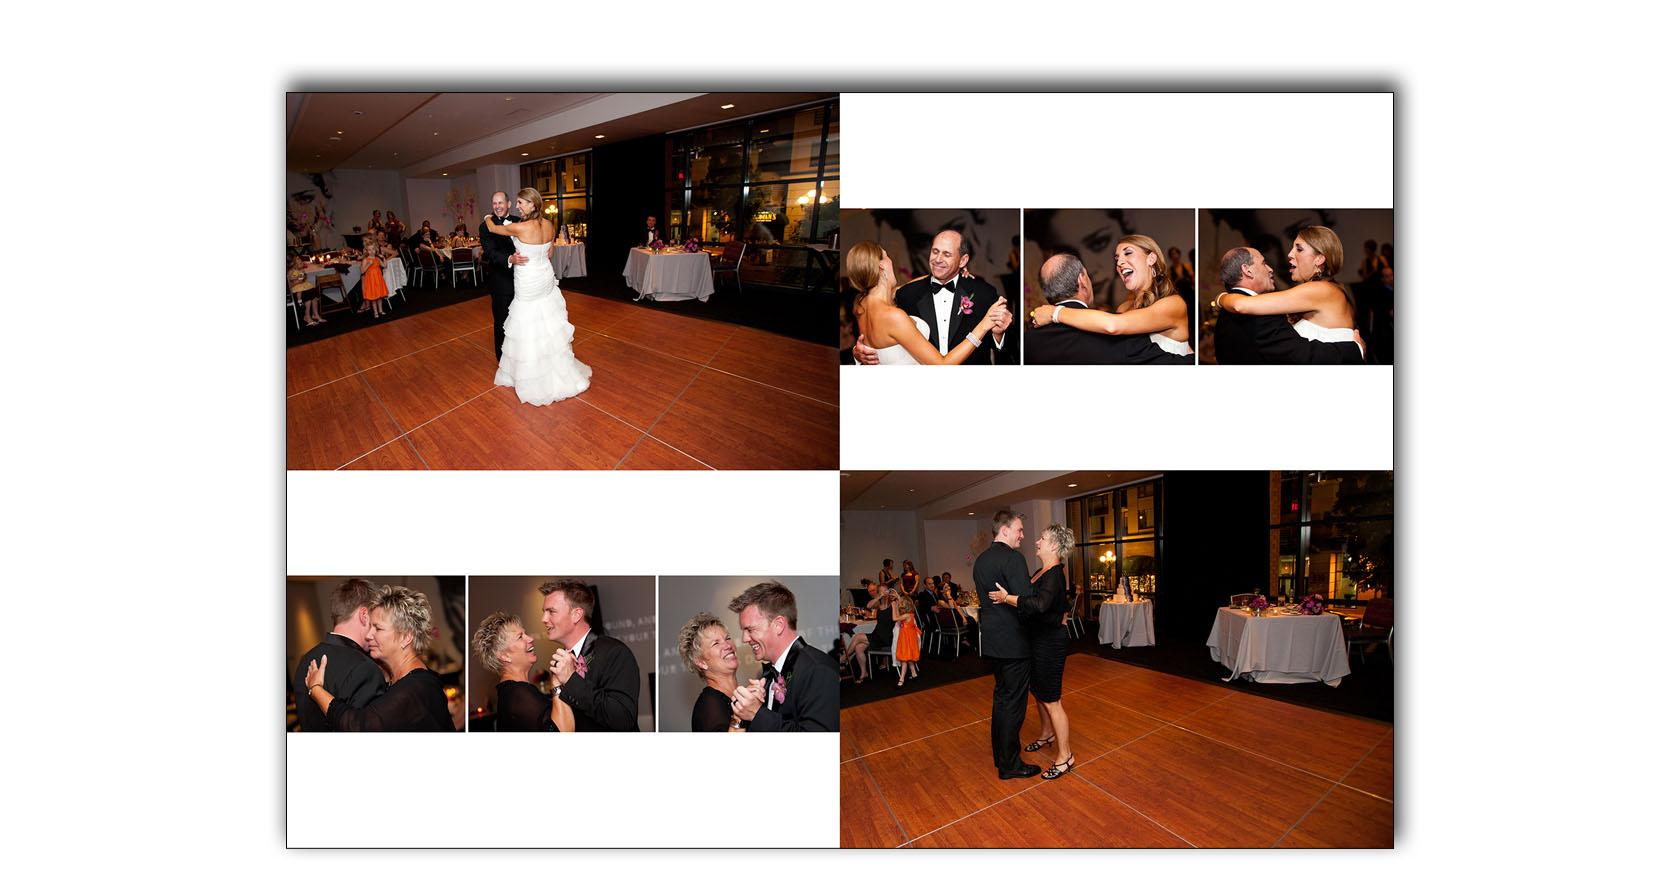 San Diego Hard Rock wedding photo album 16